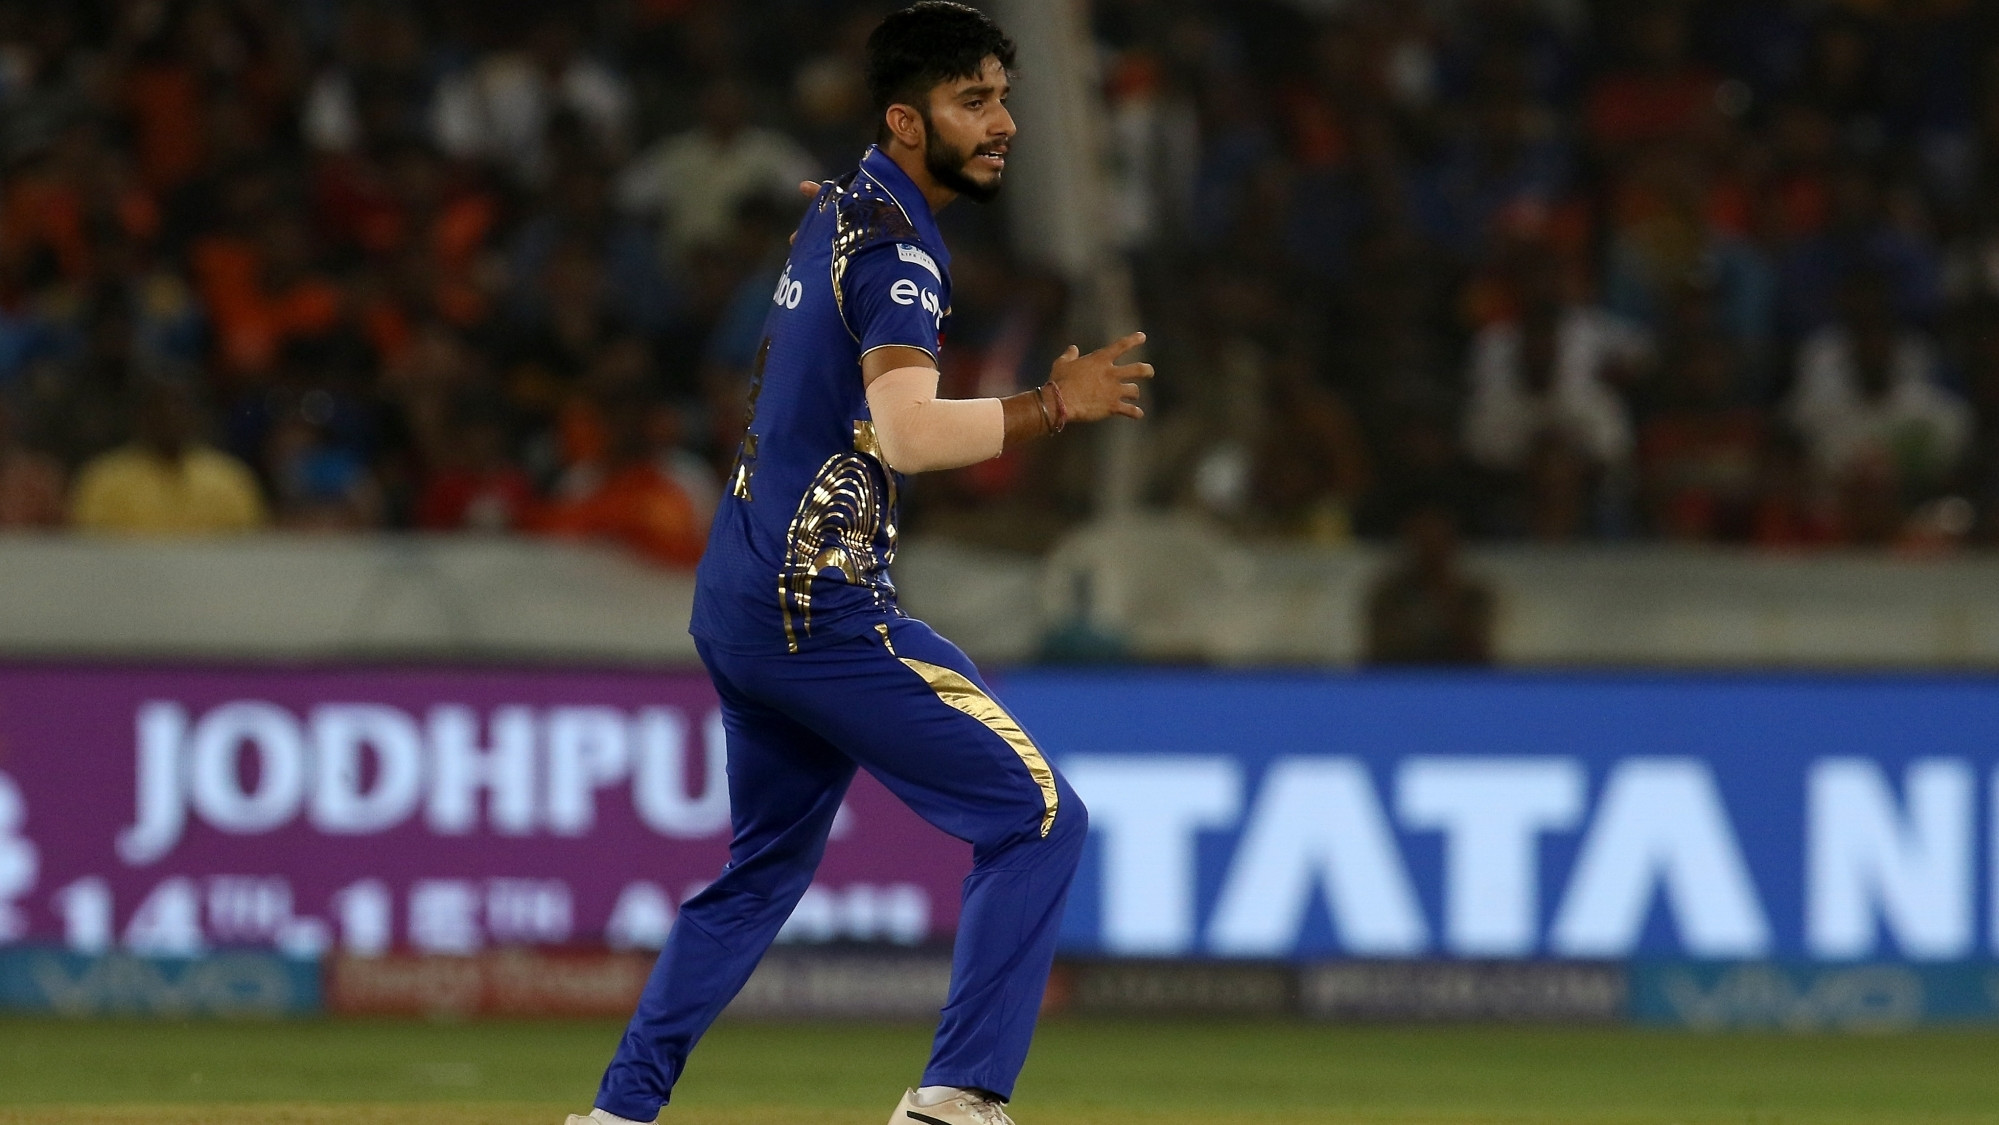 IND v AUS 2019: Mayank Markande on cloud nine post India selection